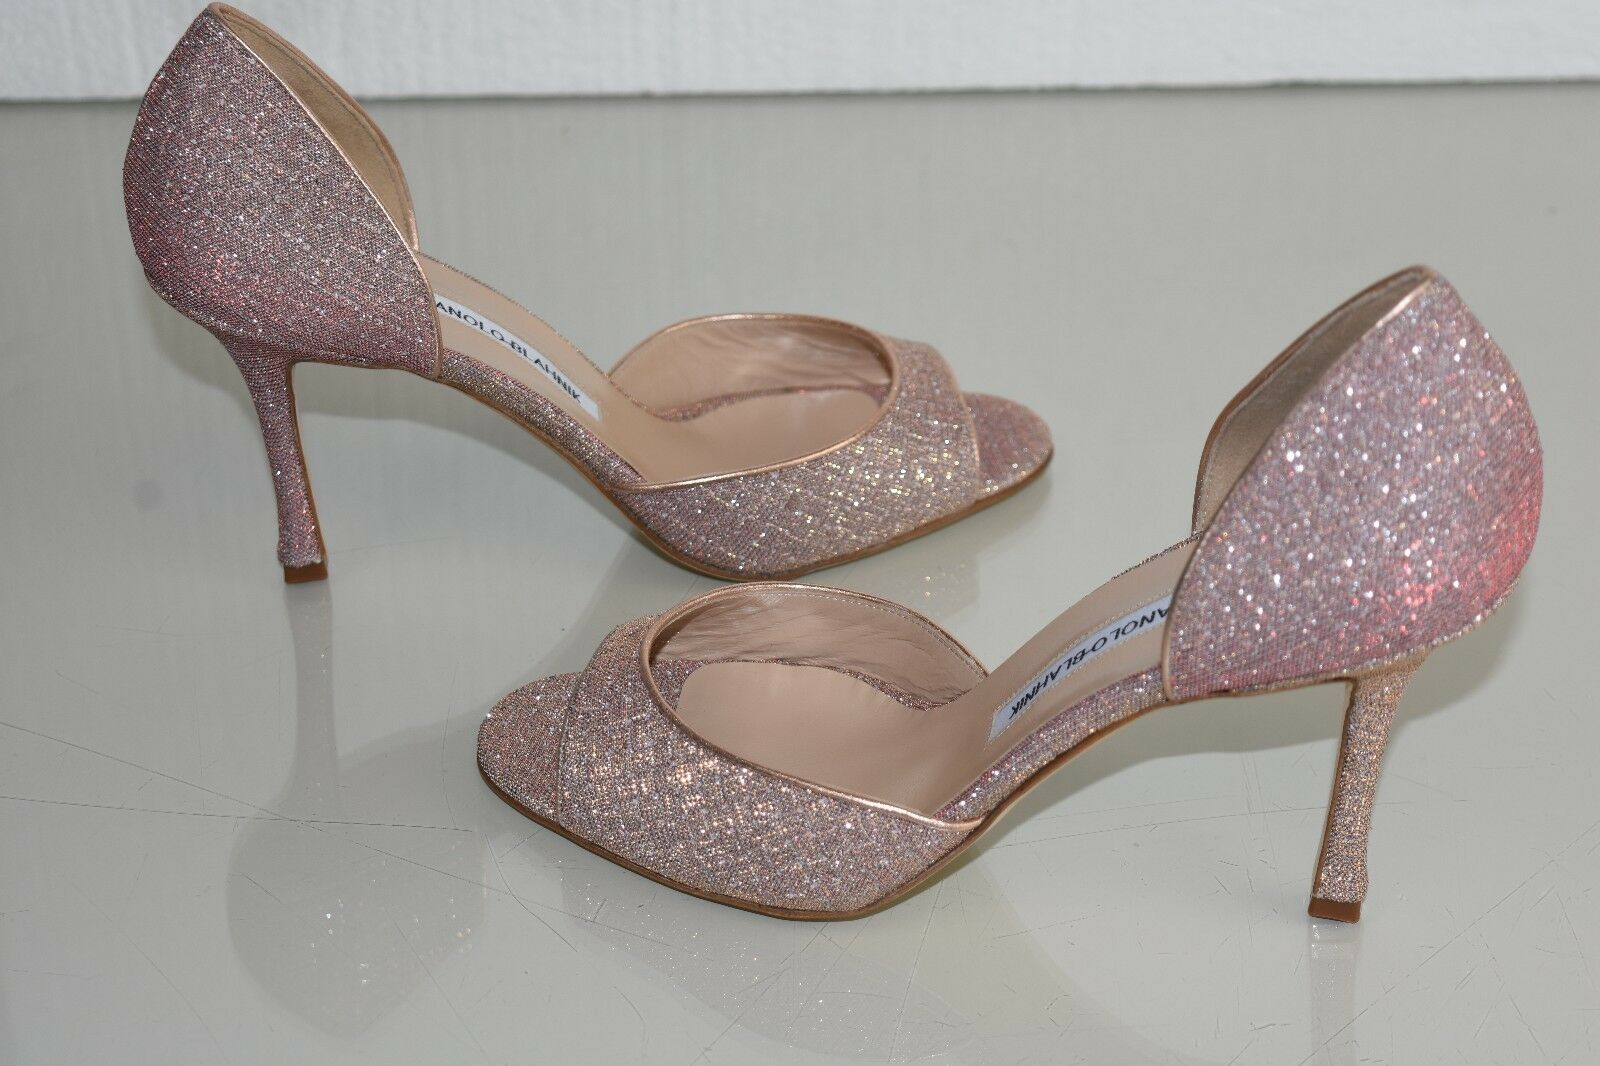 765 New Manolo Blahnik CASAMADO PUMPS Dorsay Glitter NUDE Pink shoes 40.5